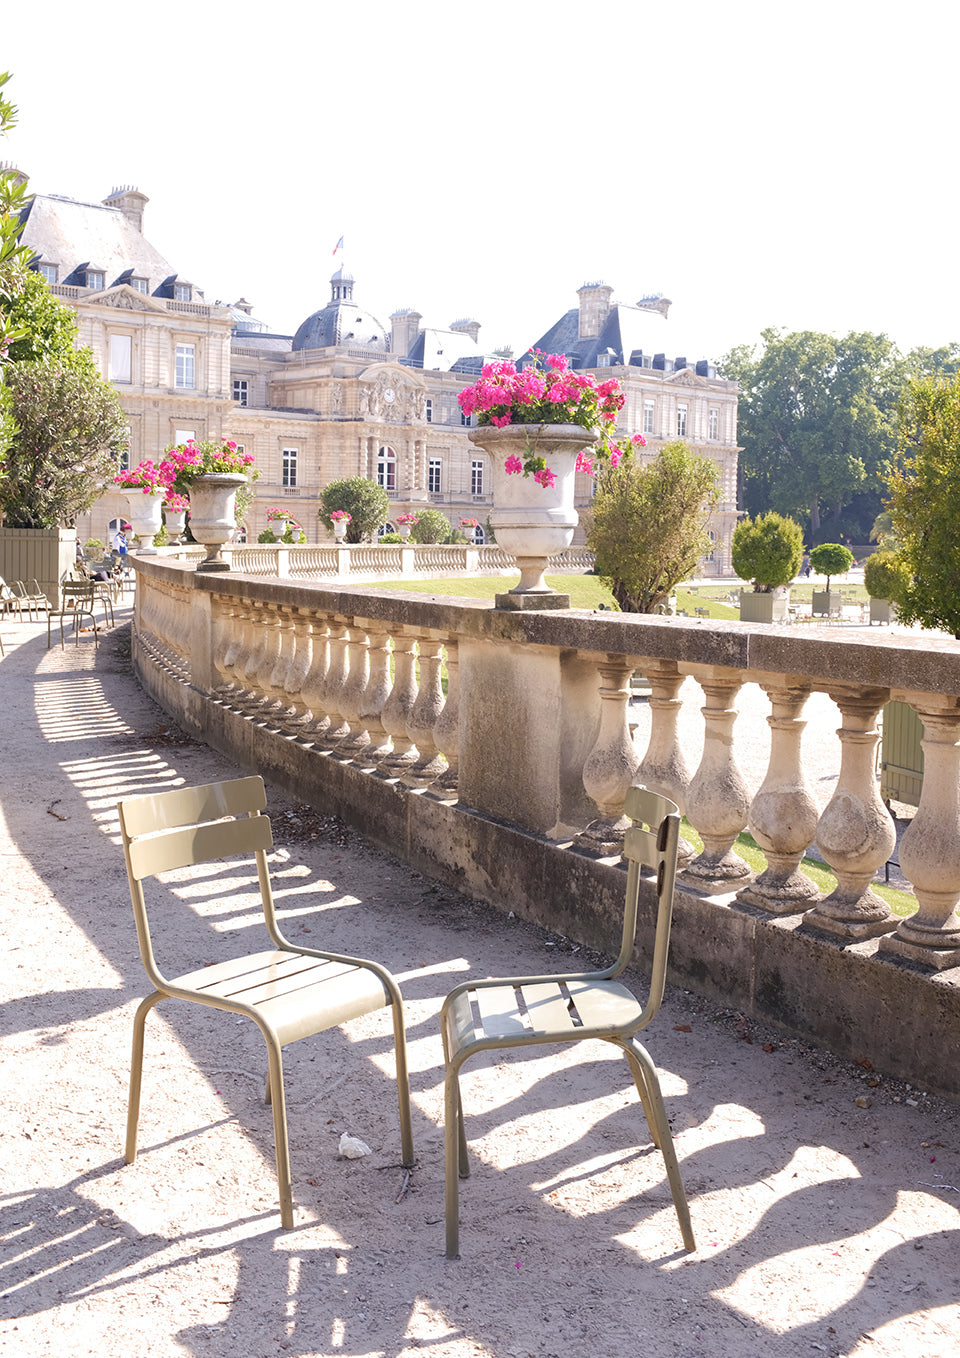 Summer in Luxembourg Gardens - Every Day Paris